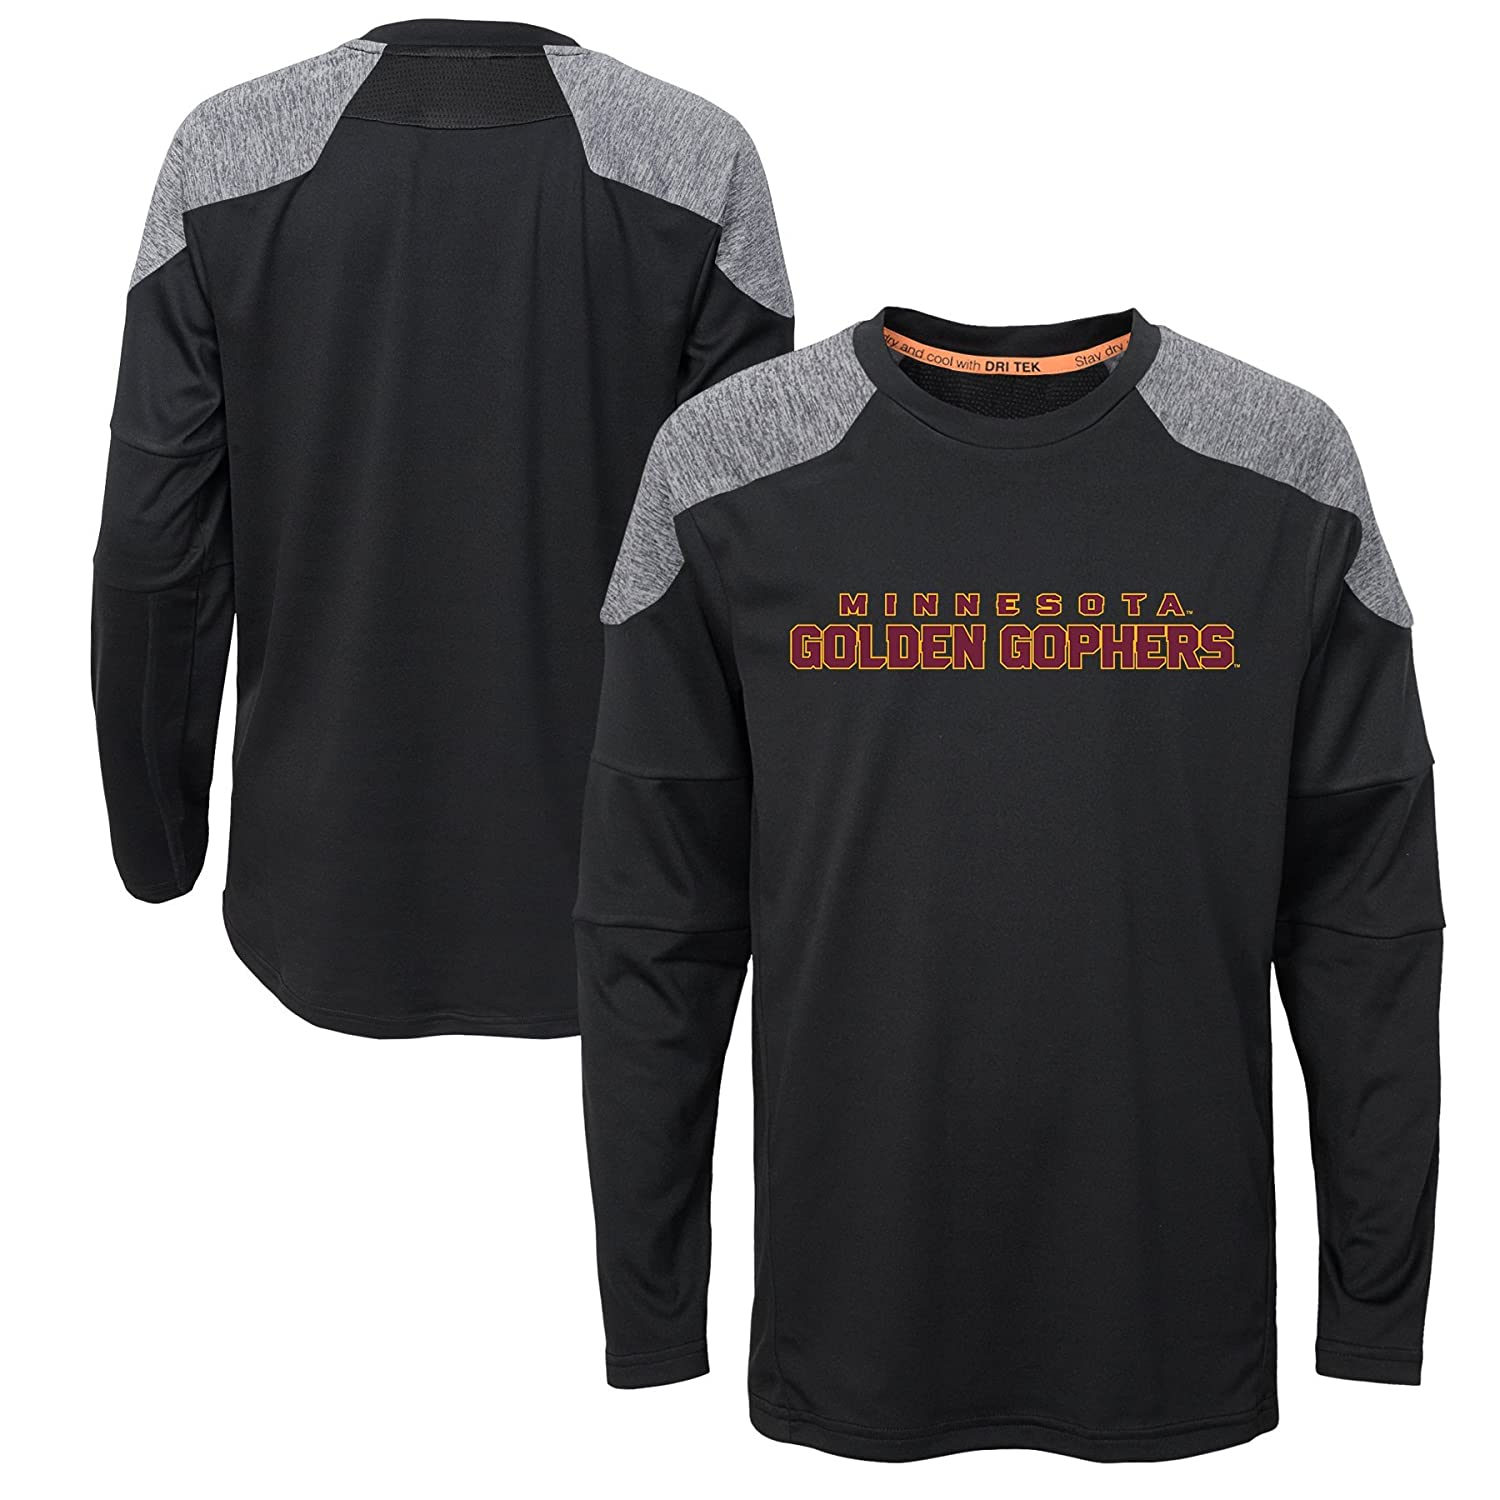 Youth Large NCAA Minnesota Golden Gophers Boys Outerstuff Gamma Long Sleeve Performance Tee Team Color 12-14